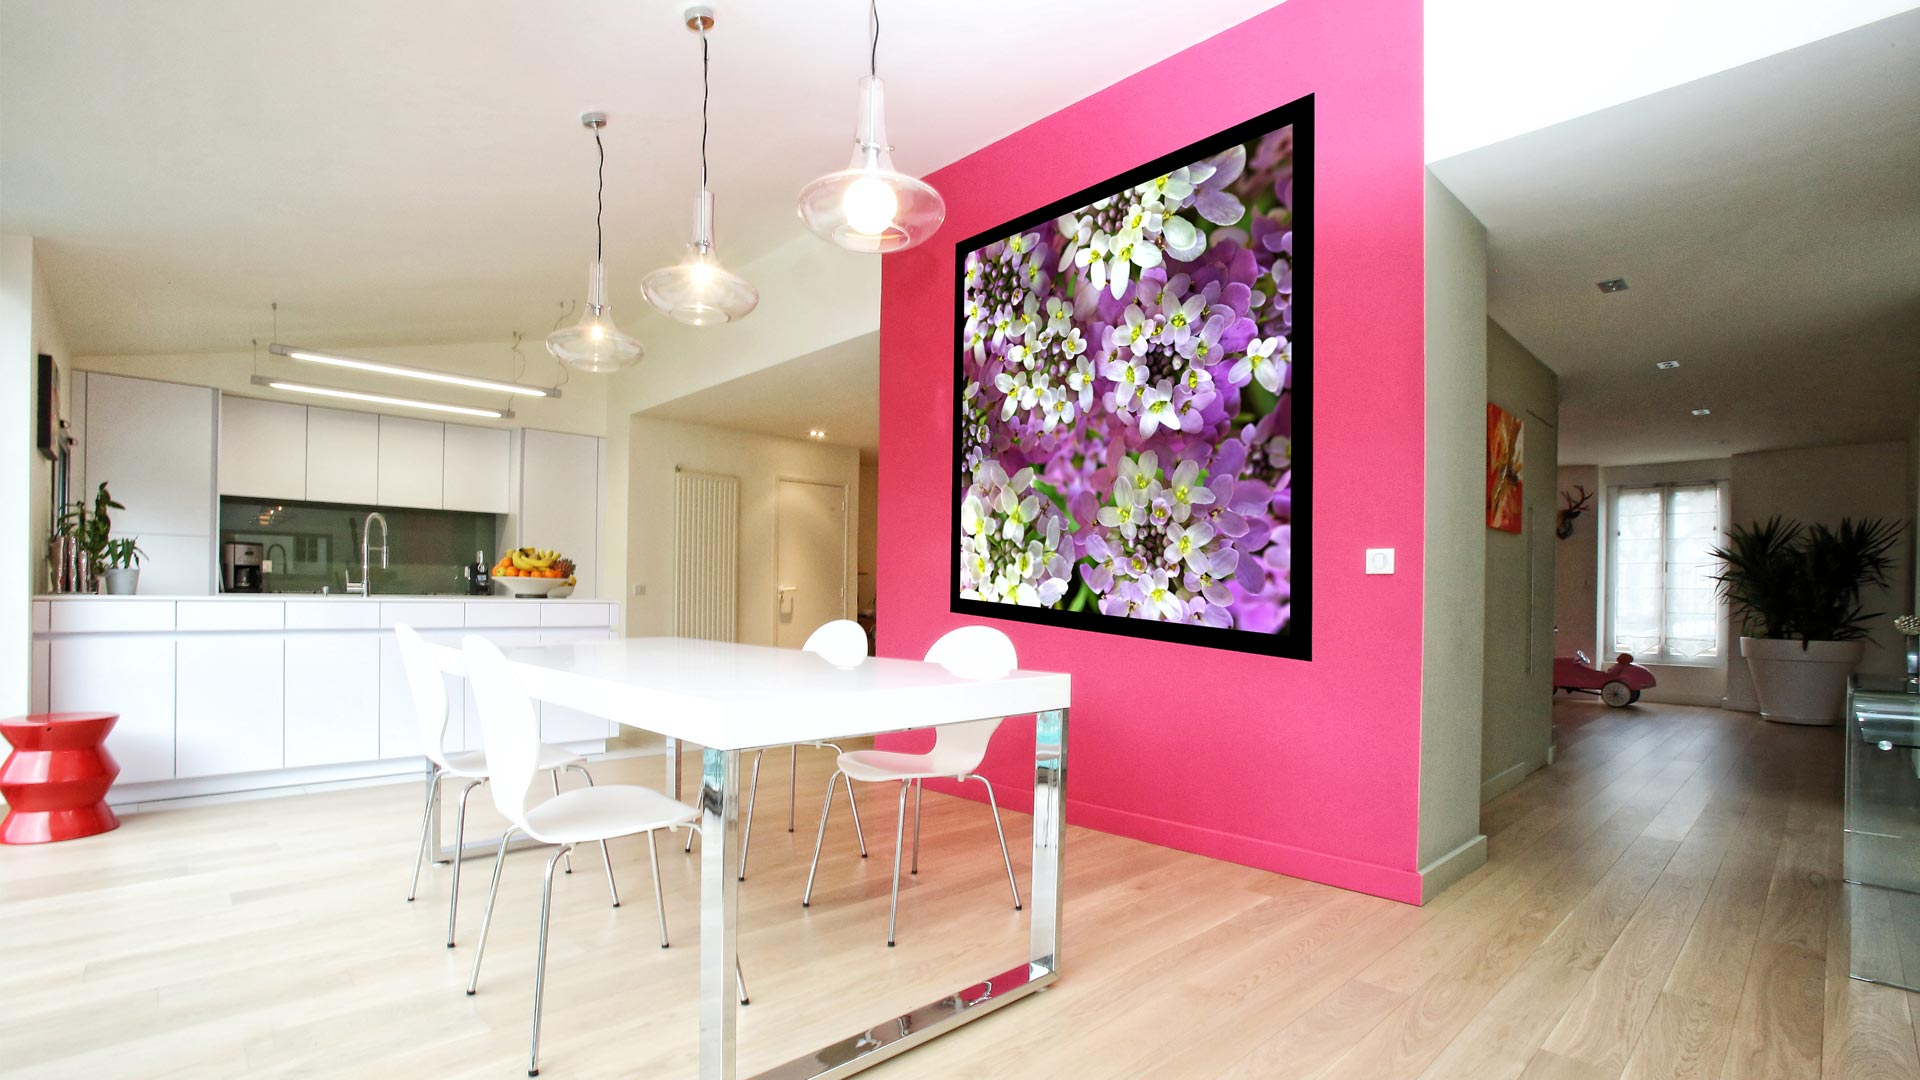 Photo decoration interieure meilleures images d for Sites de decoration interieure maison